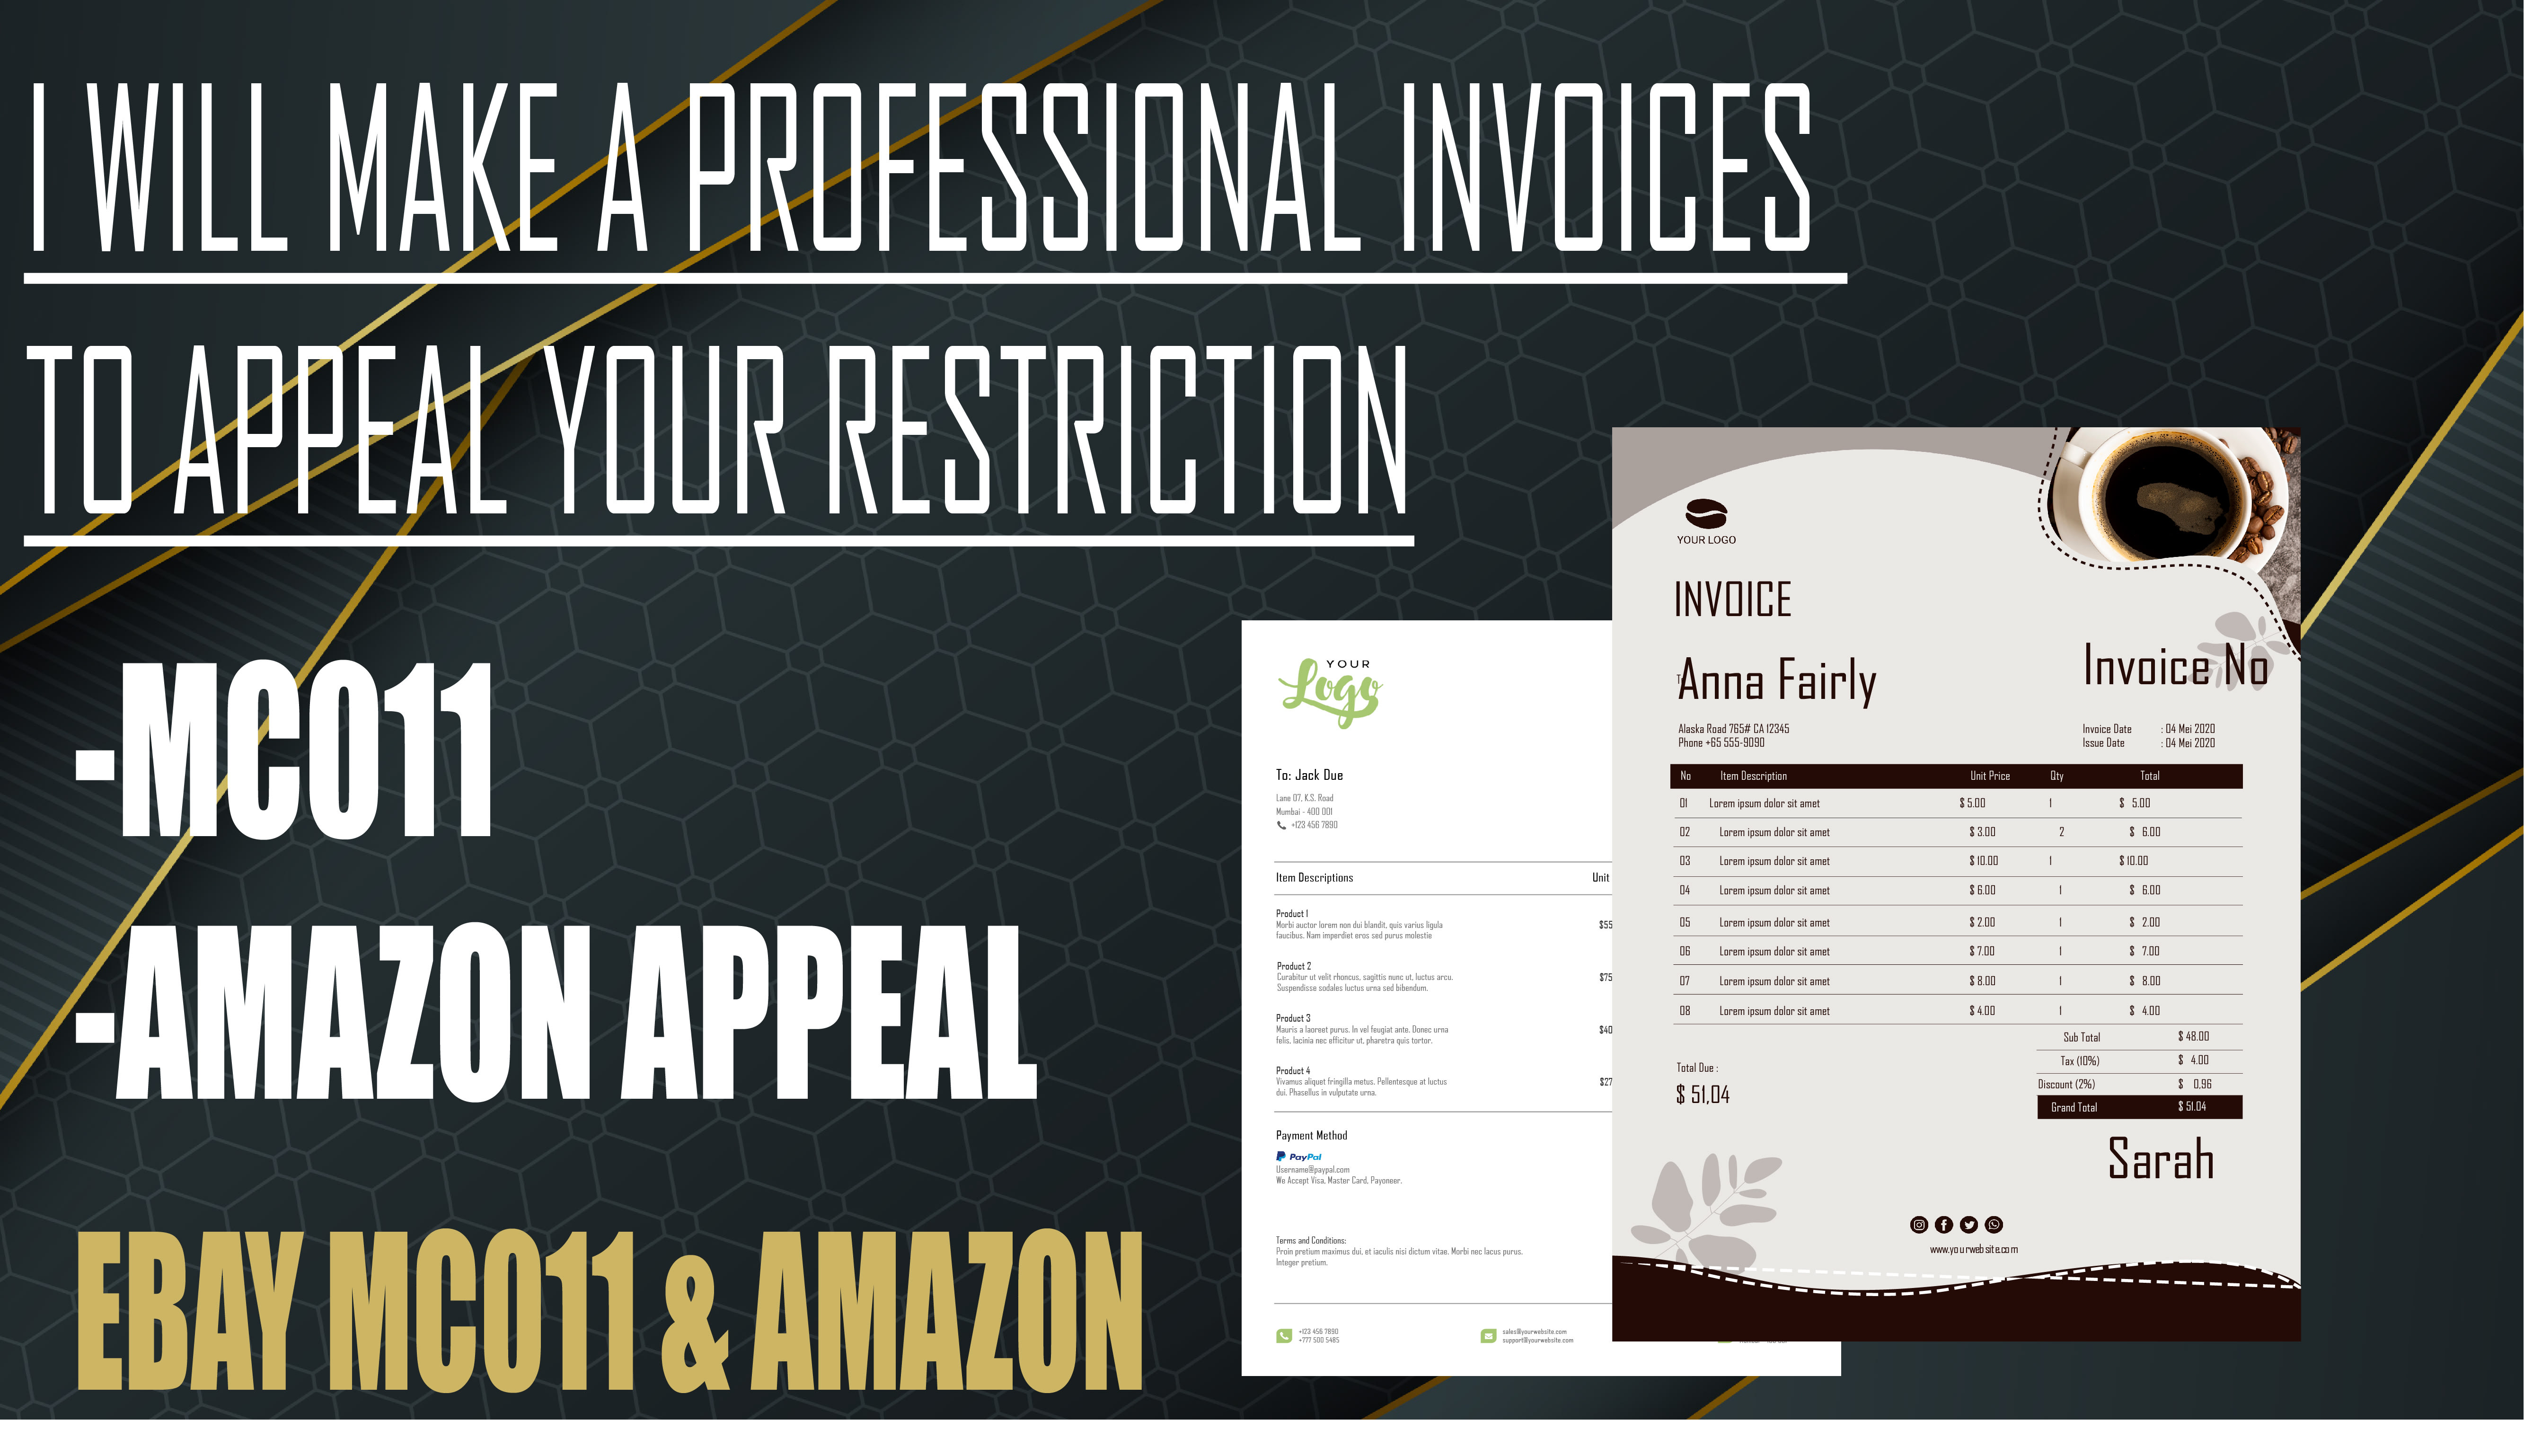 Make A Professional Invoices To Appeal Your Amazon Or Ebay Mc011 Suspension By Thebest990